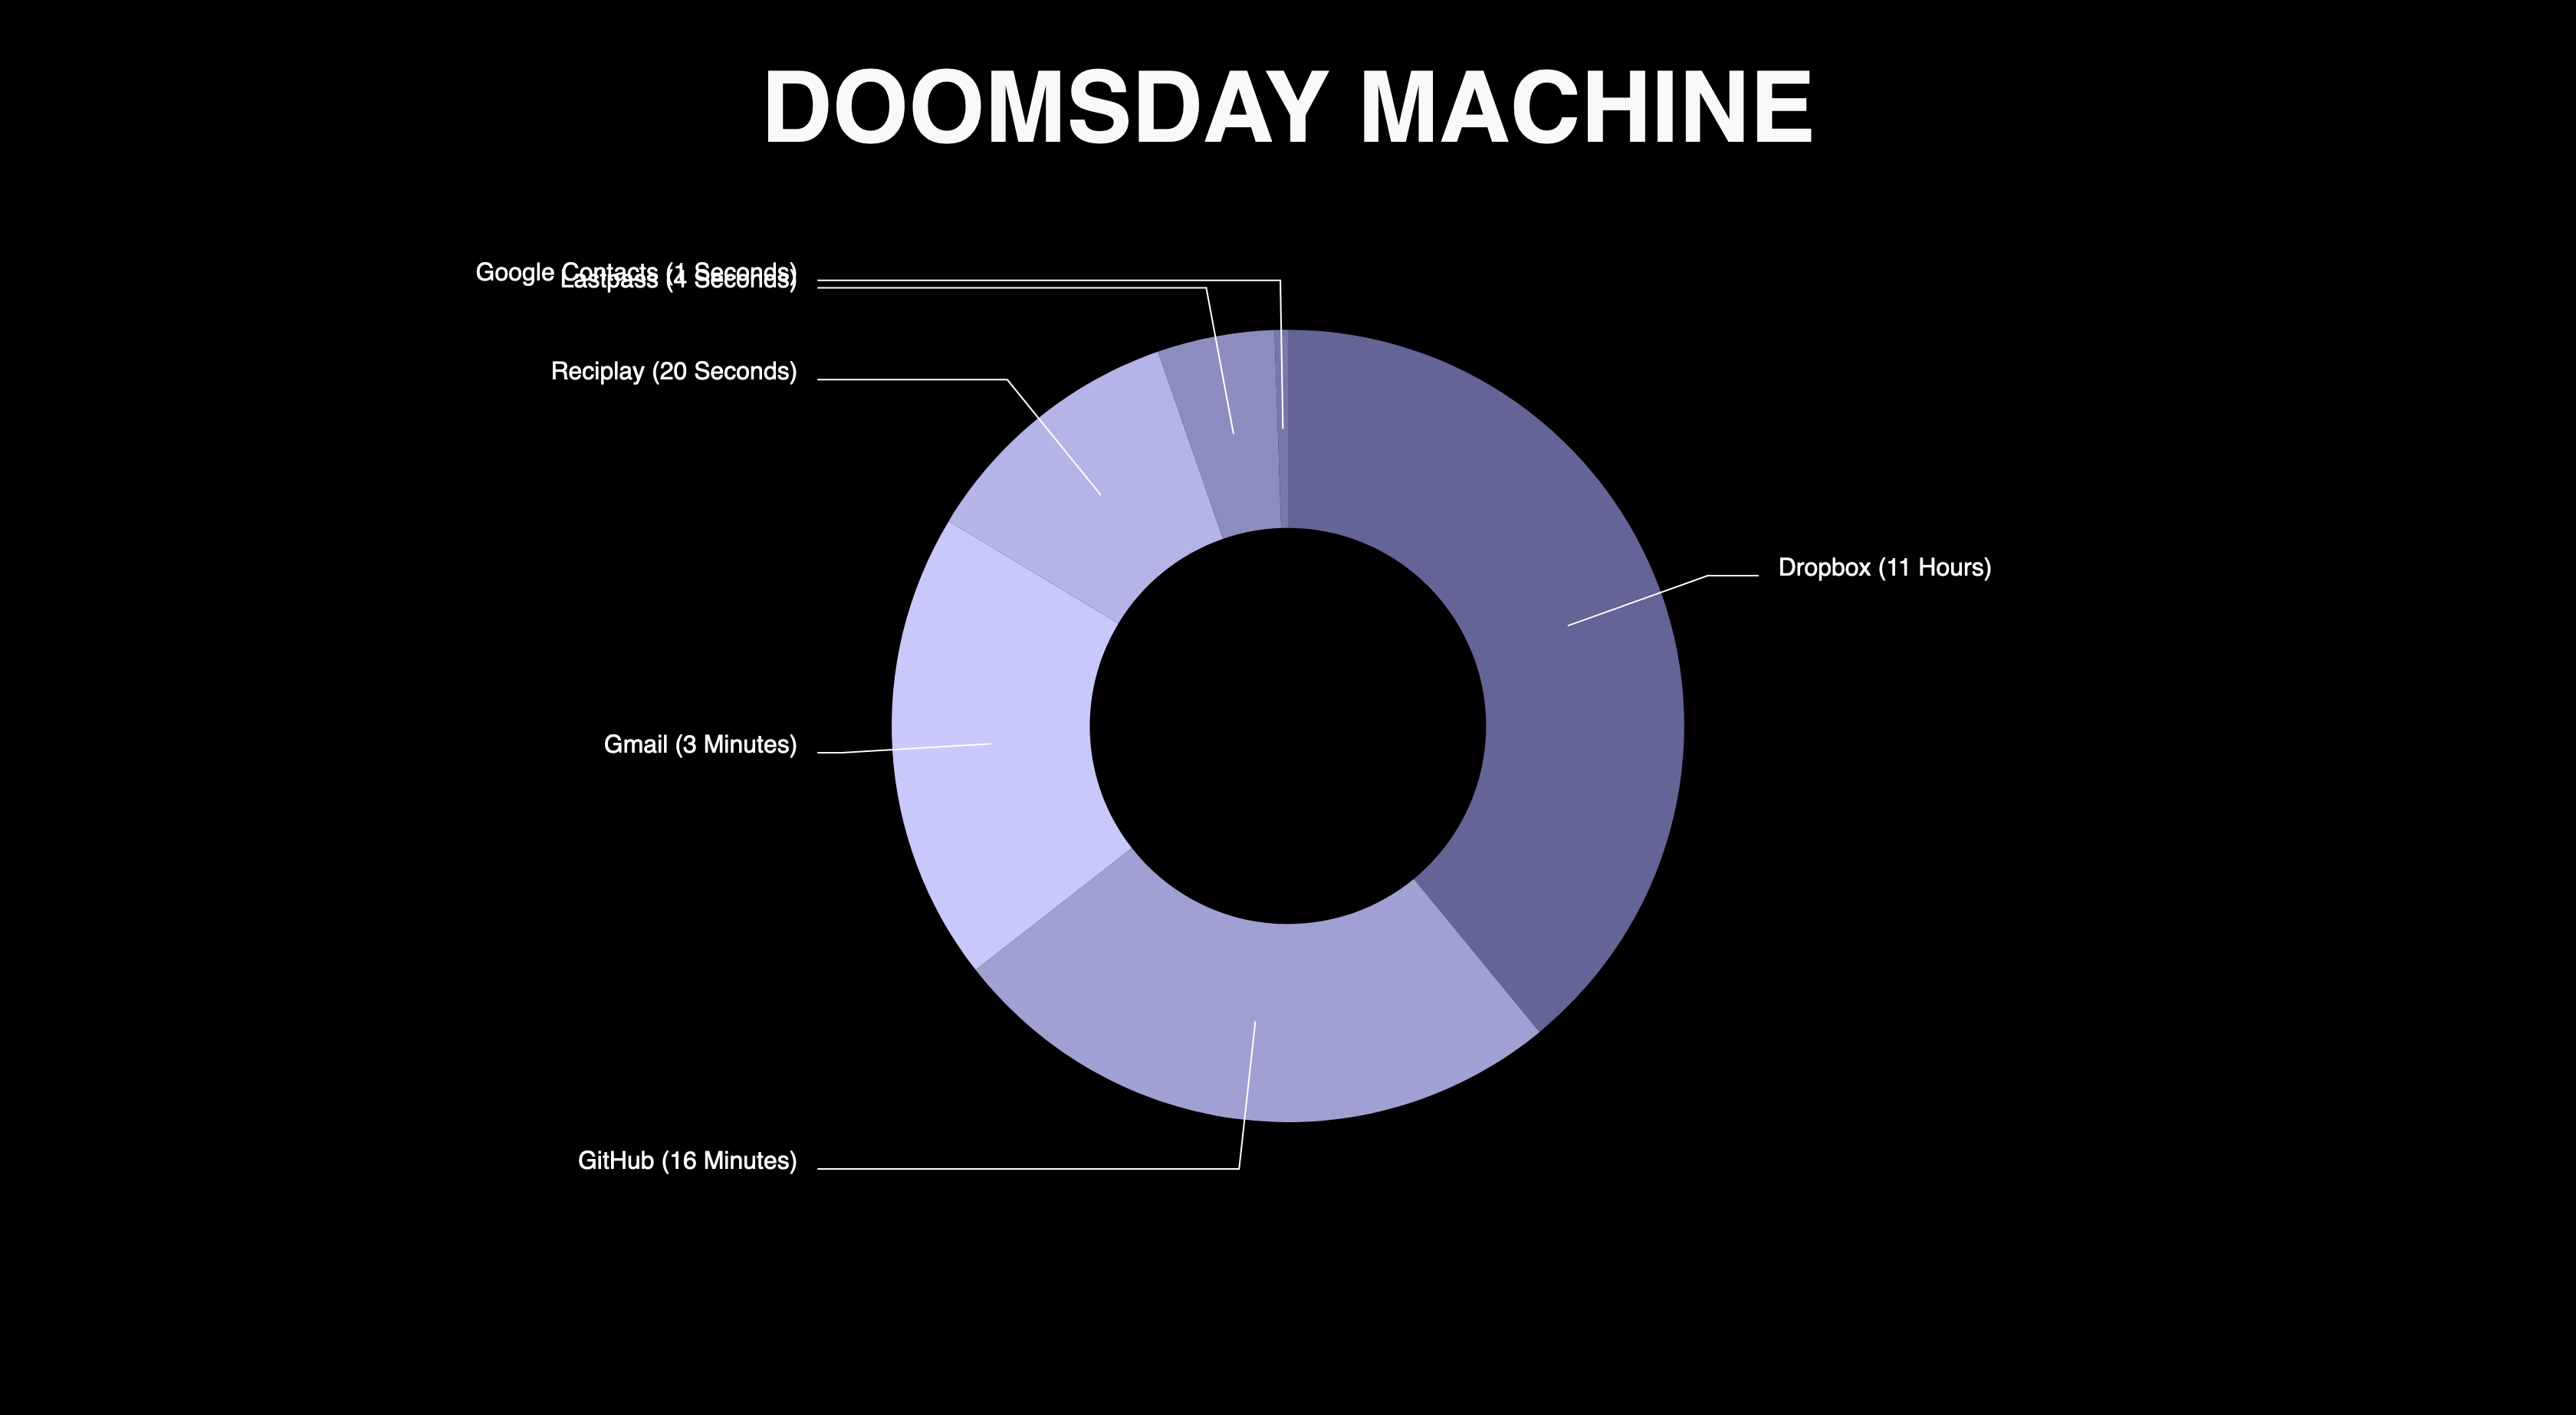 Doomsday Machine screenshot